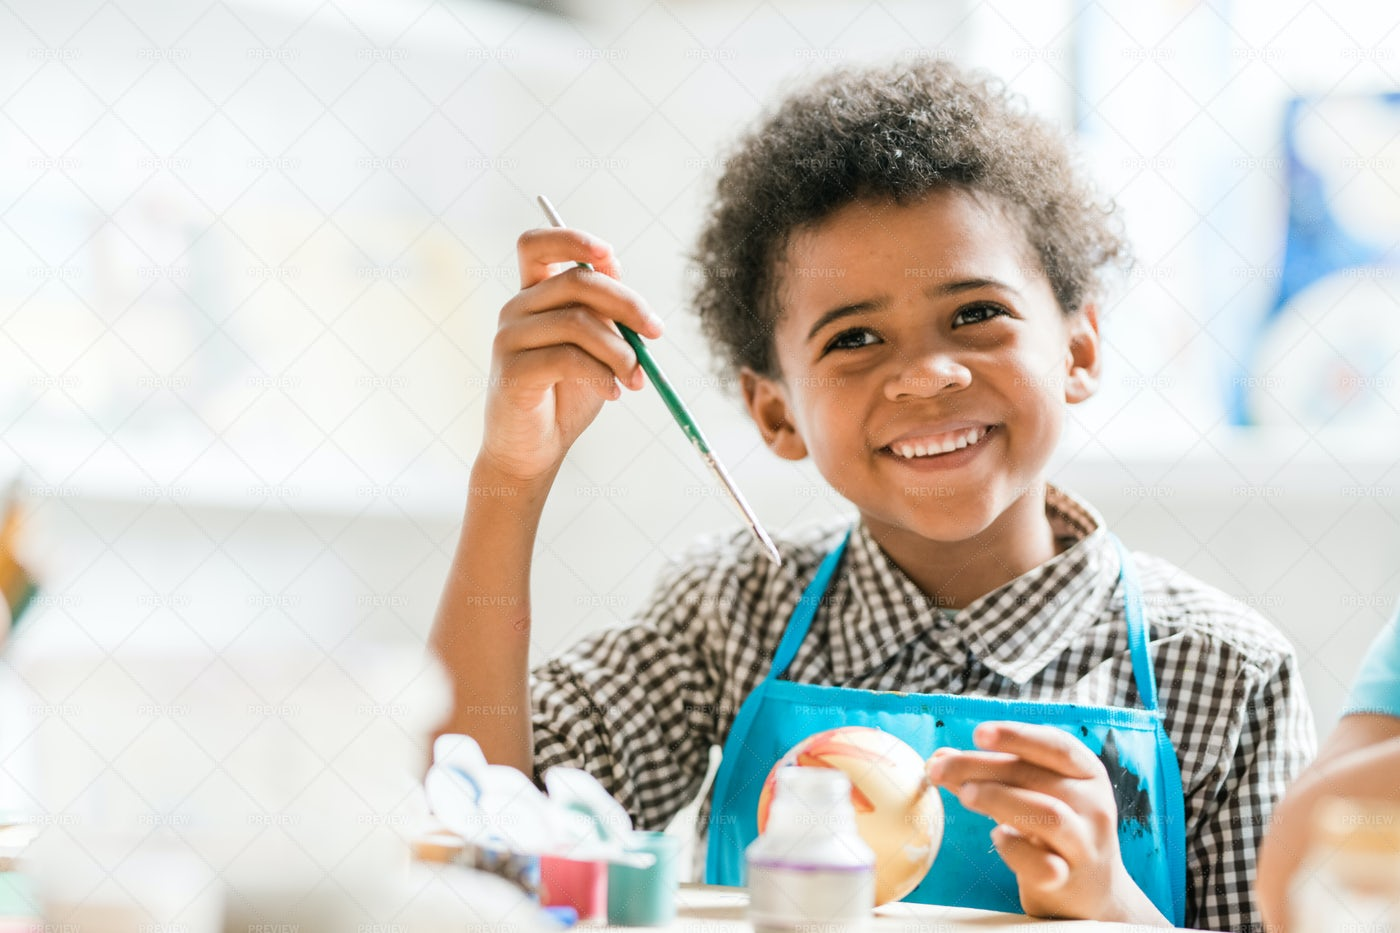 Cheerful Schoolboy With Paintbrush...: Stock Photos